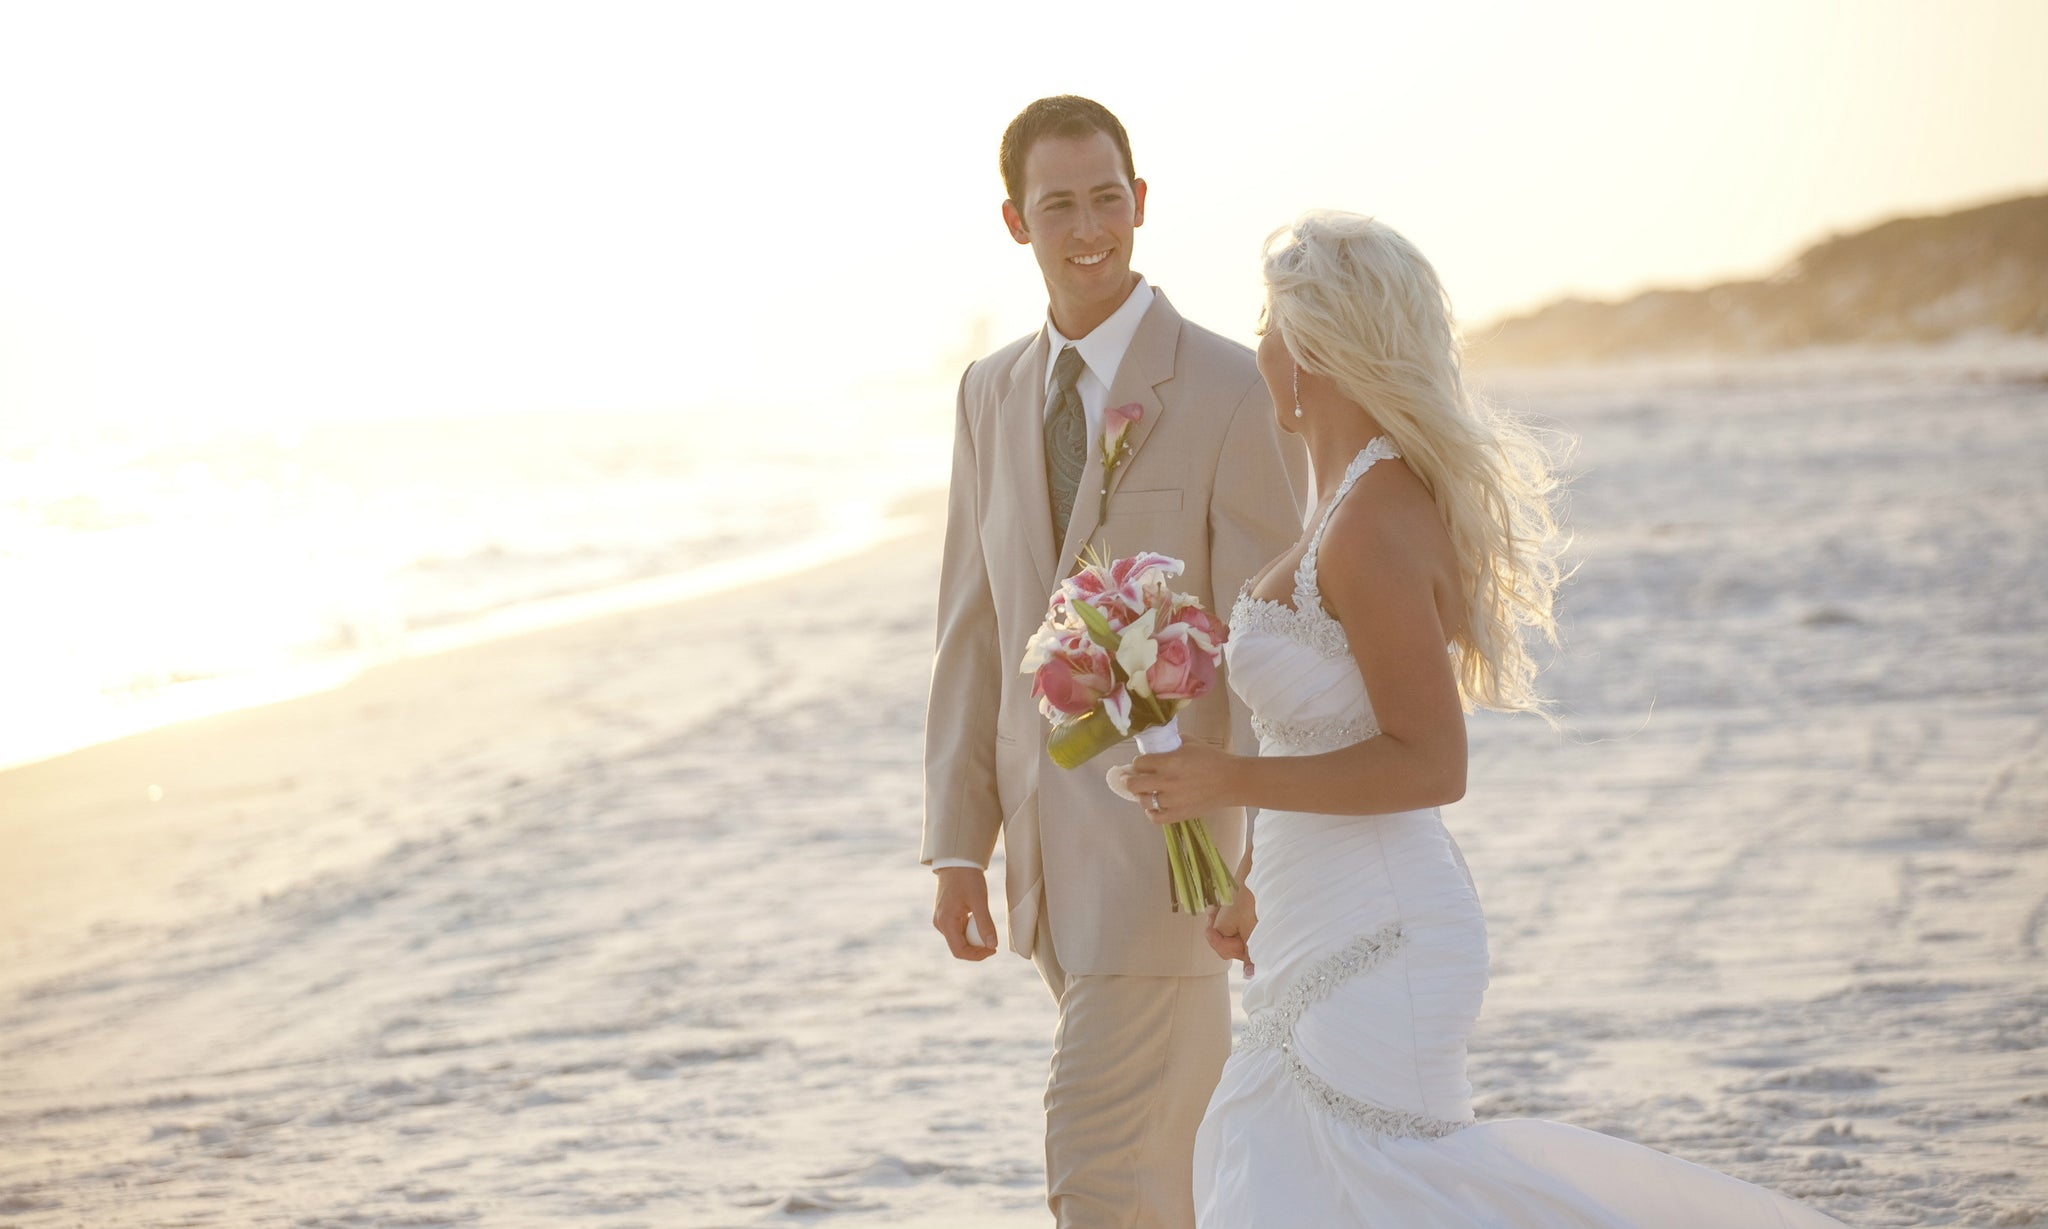 Wedding flip flops bride and groom on beach